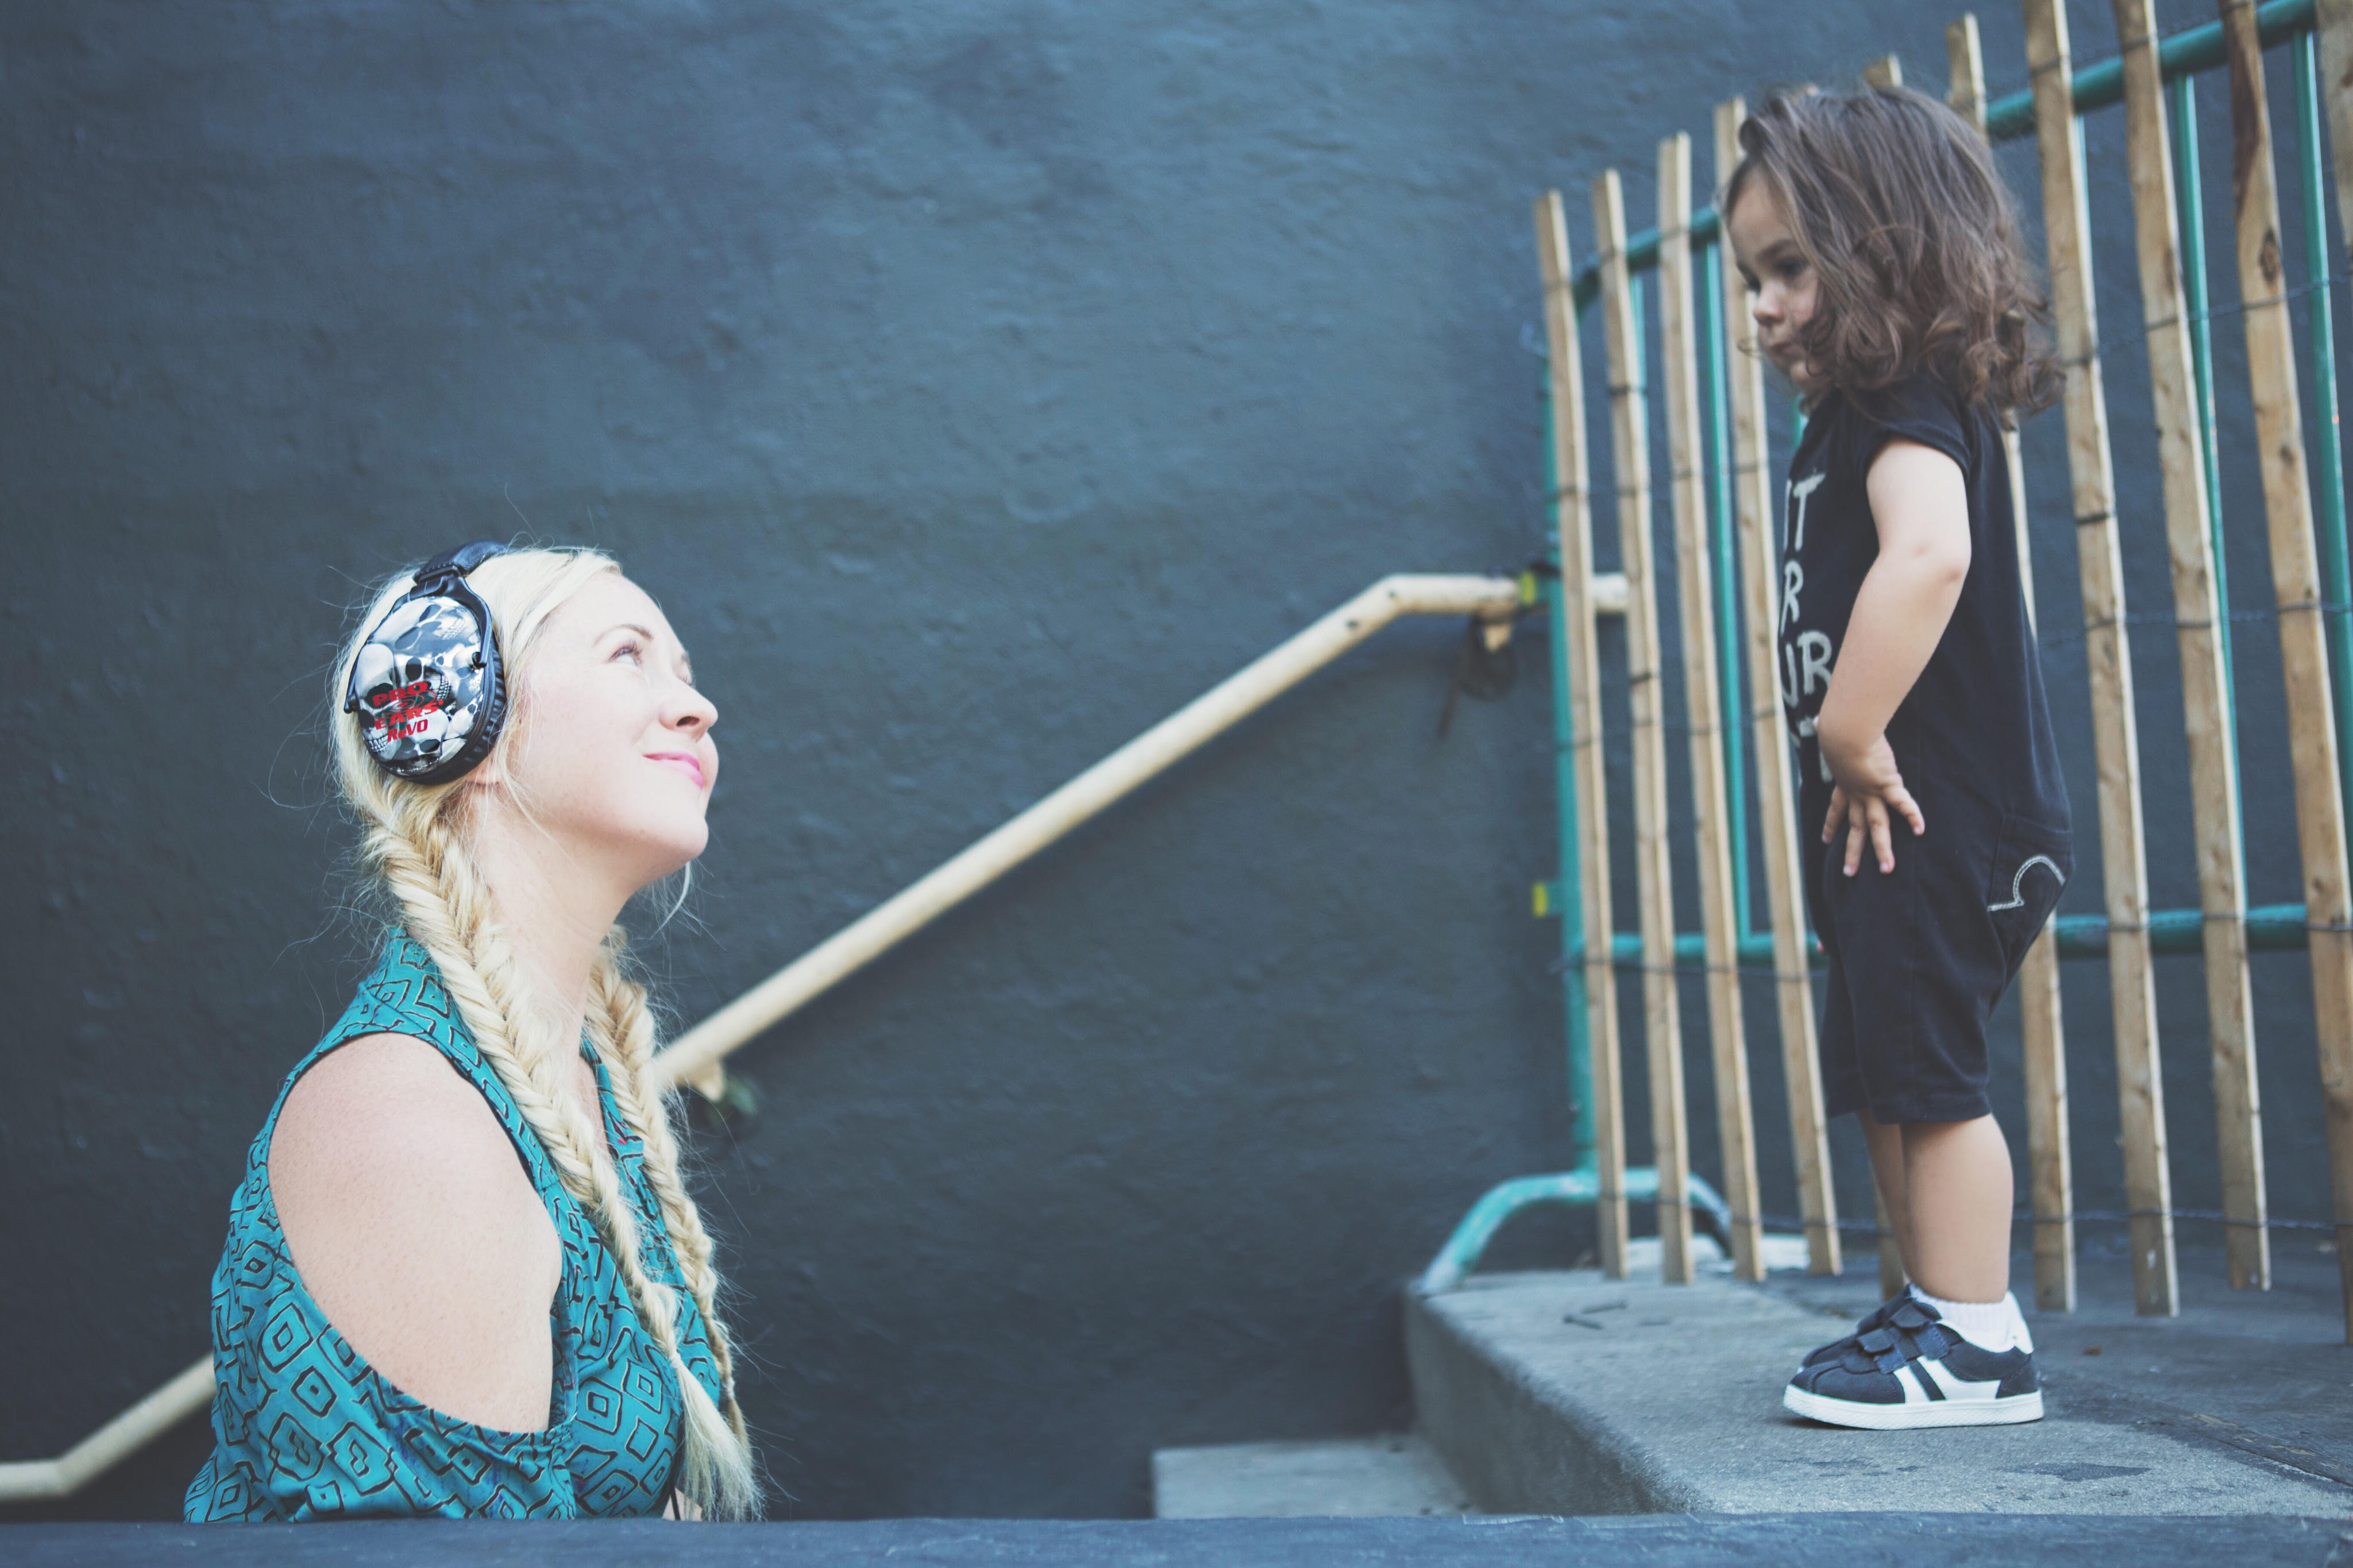 Chondra and Atlas Sanchez playing with ear protection